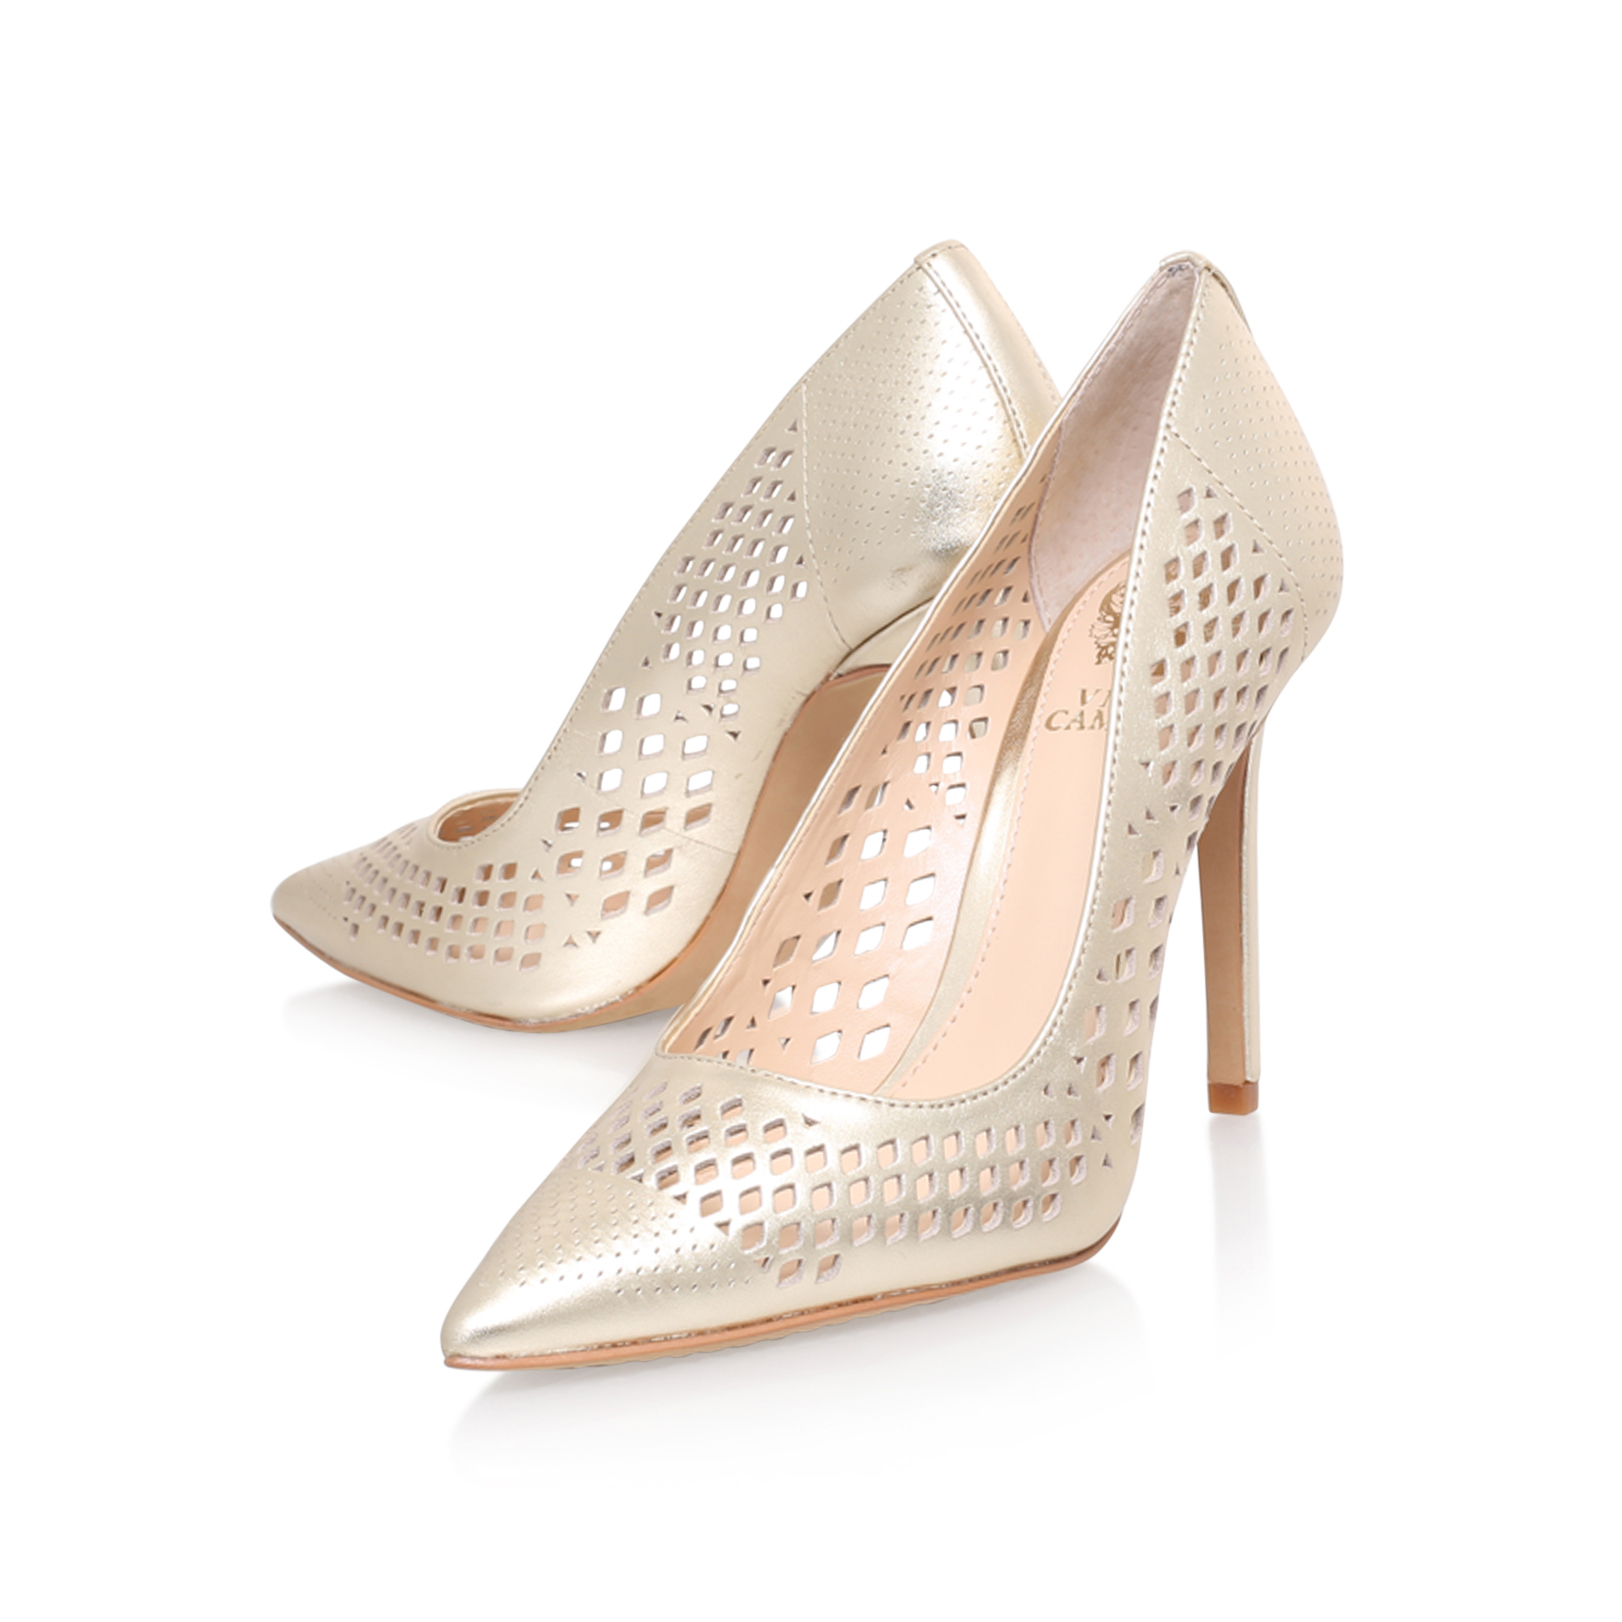 Vince Camuto Nico Gold High Heel Court Shoes By Vince Camuto